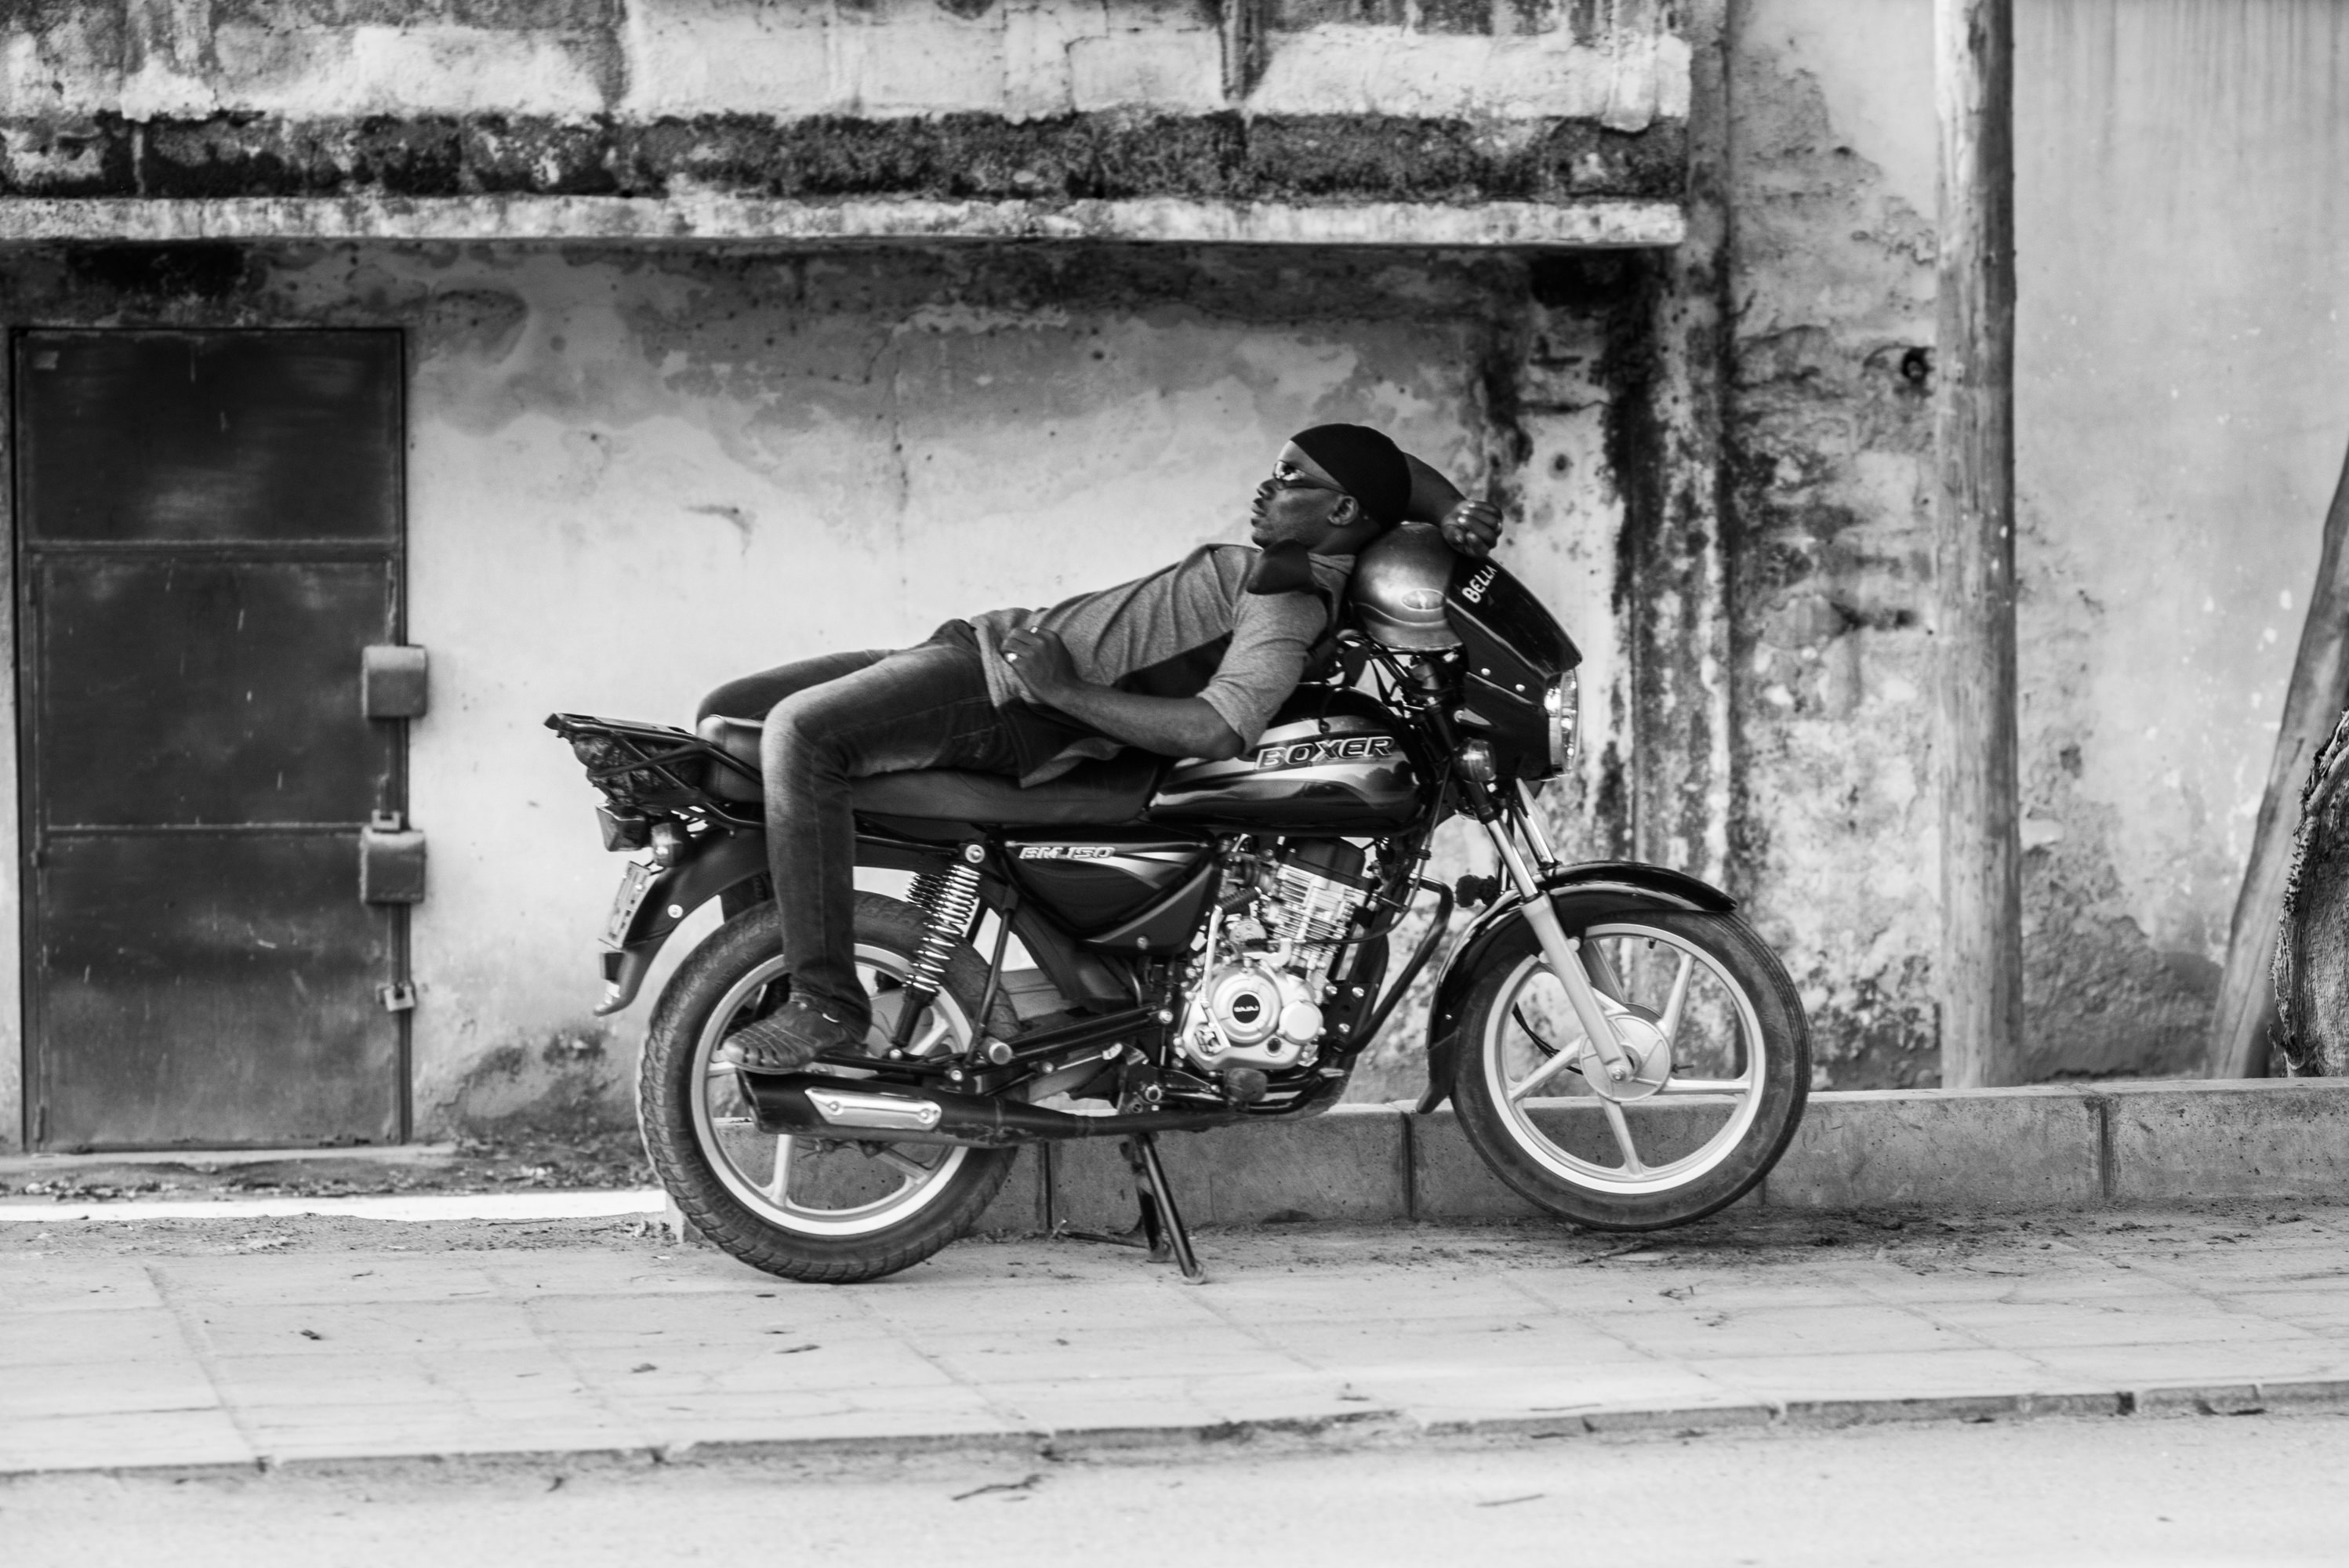 Man asleep on a motorcycle.